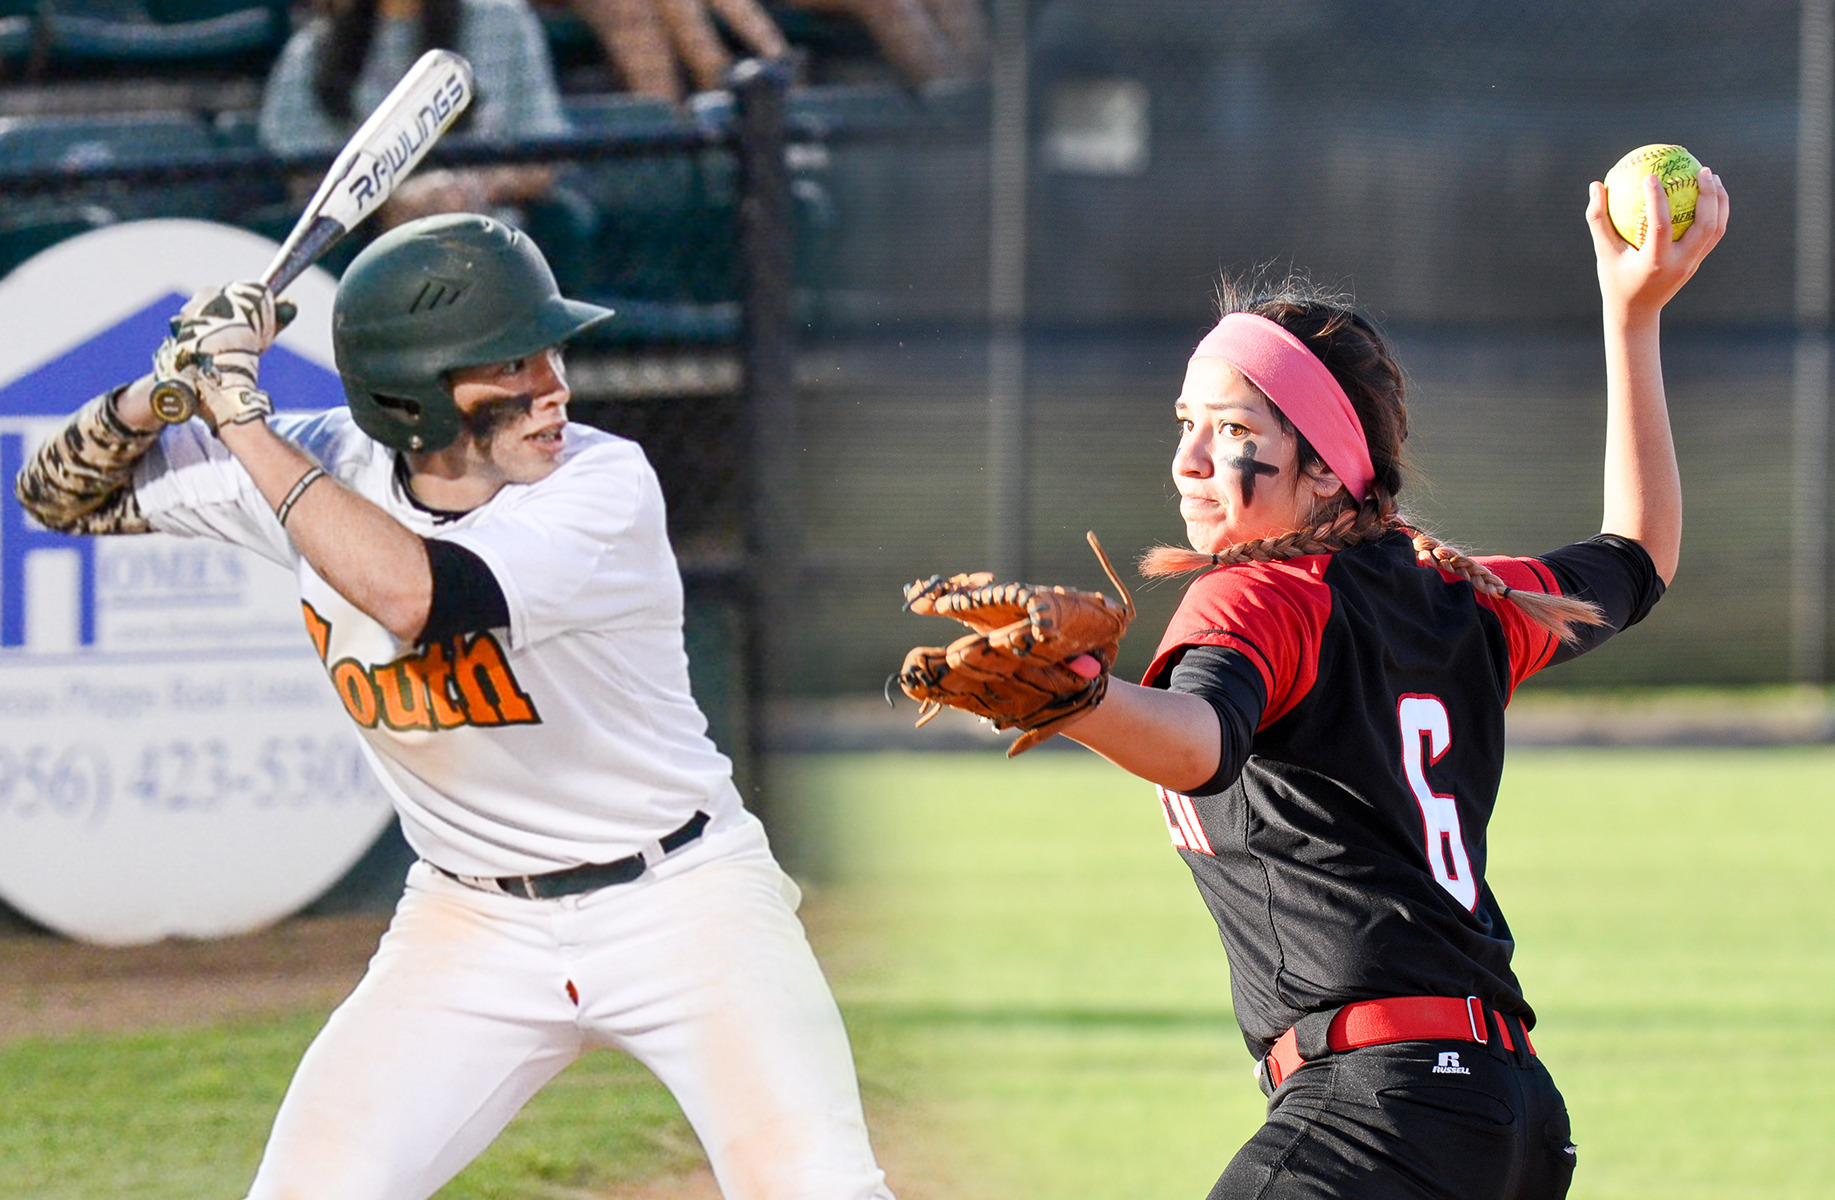 Baseball and softball seasons swing into action